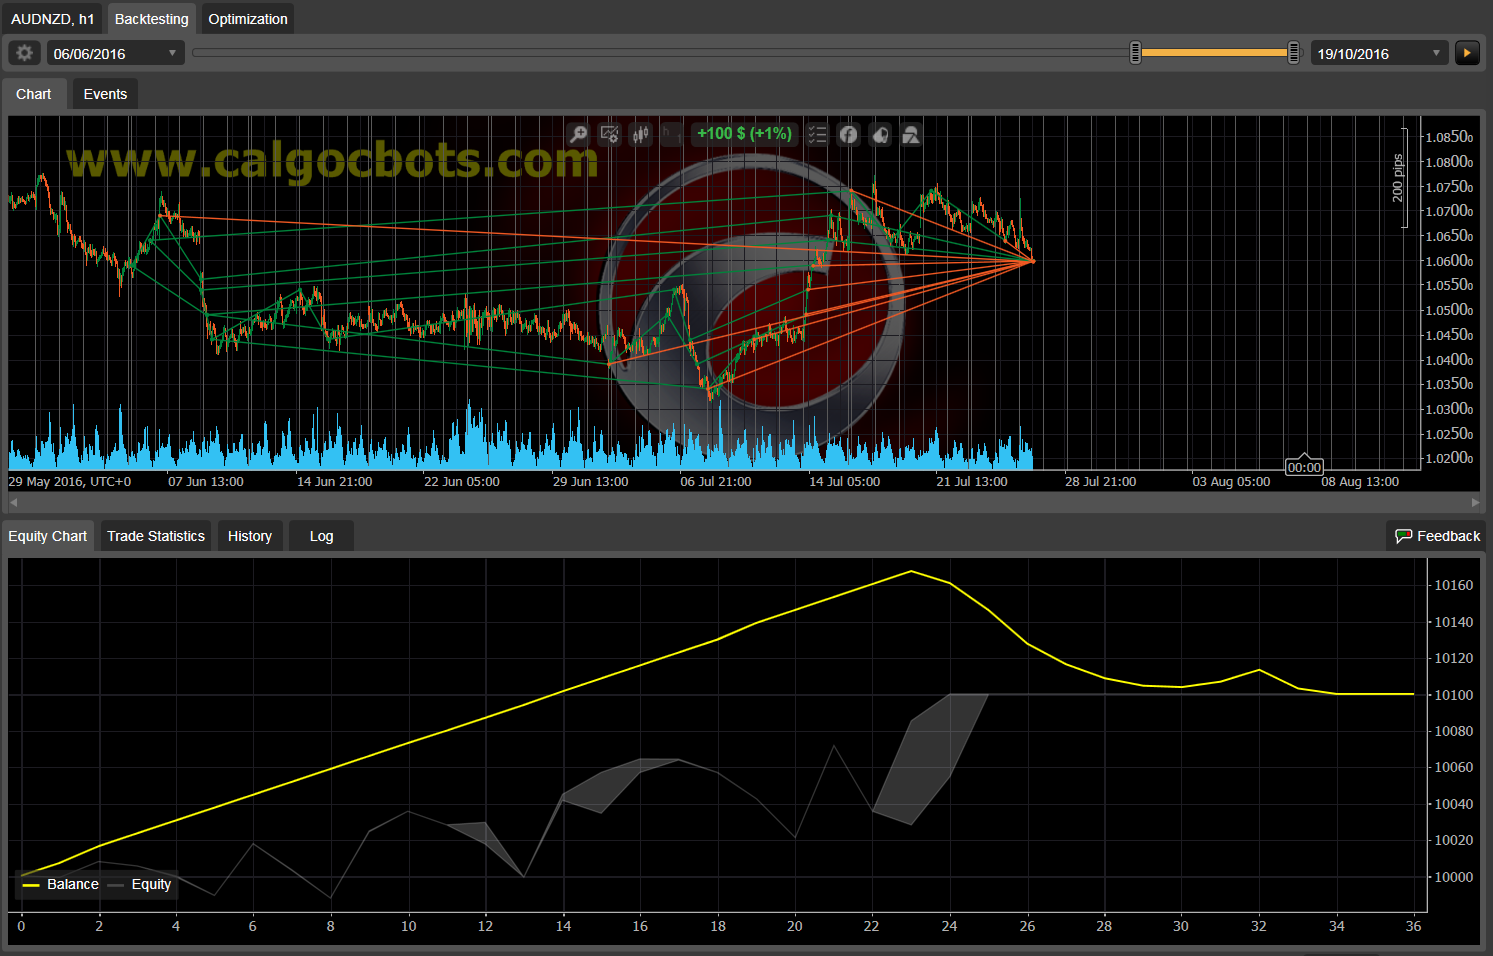 Dual Grid Hedge AUD NZD 1h cAlgo cBots cTrader 1k 100 50 100 - 11